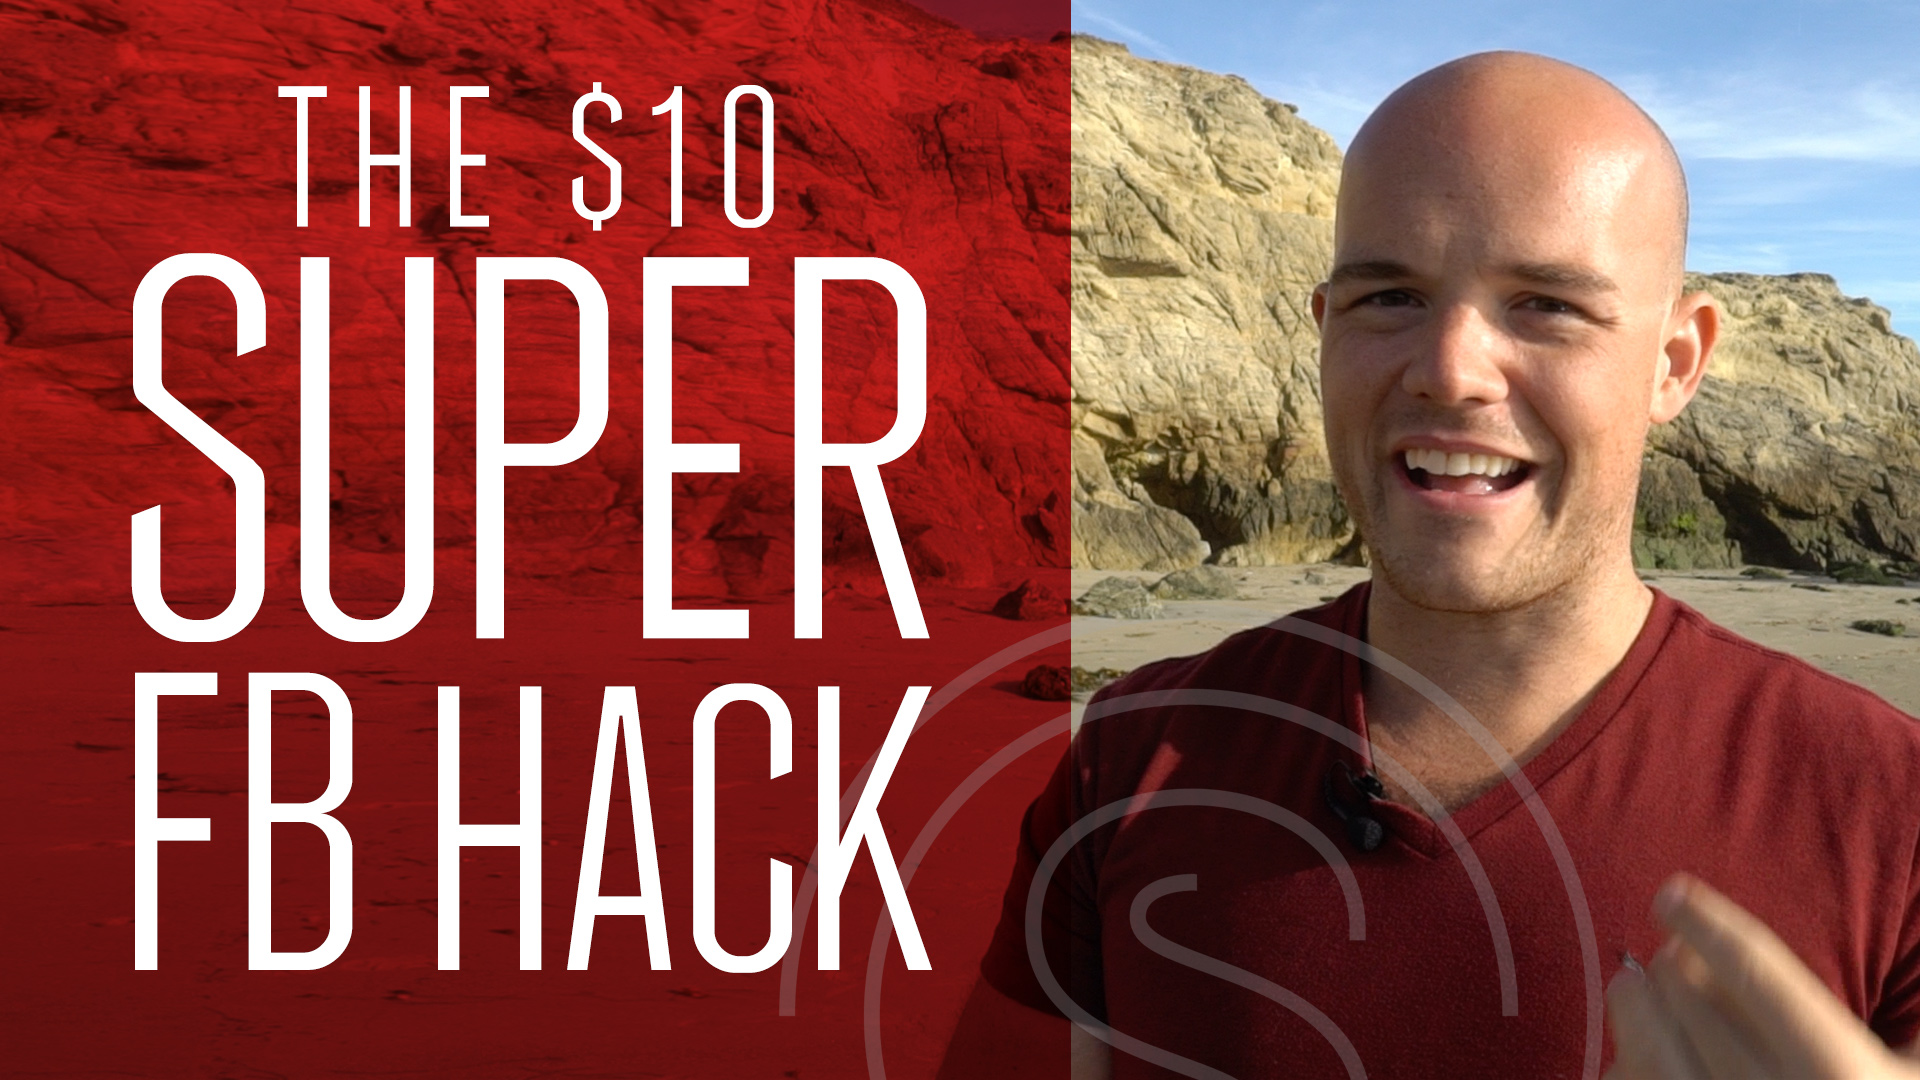 Facebook Brand Awareness Campaign -- The $10 Super FB Hack